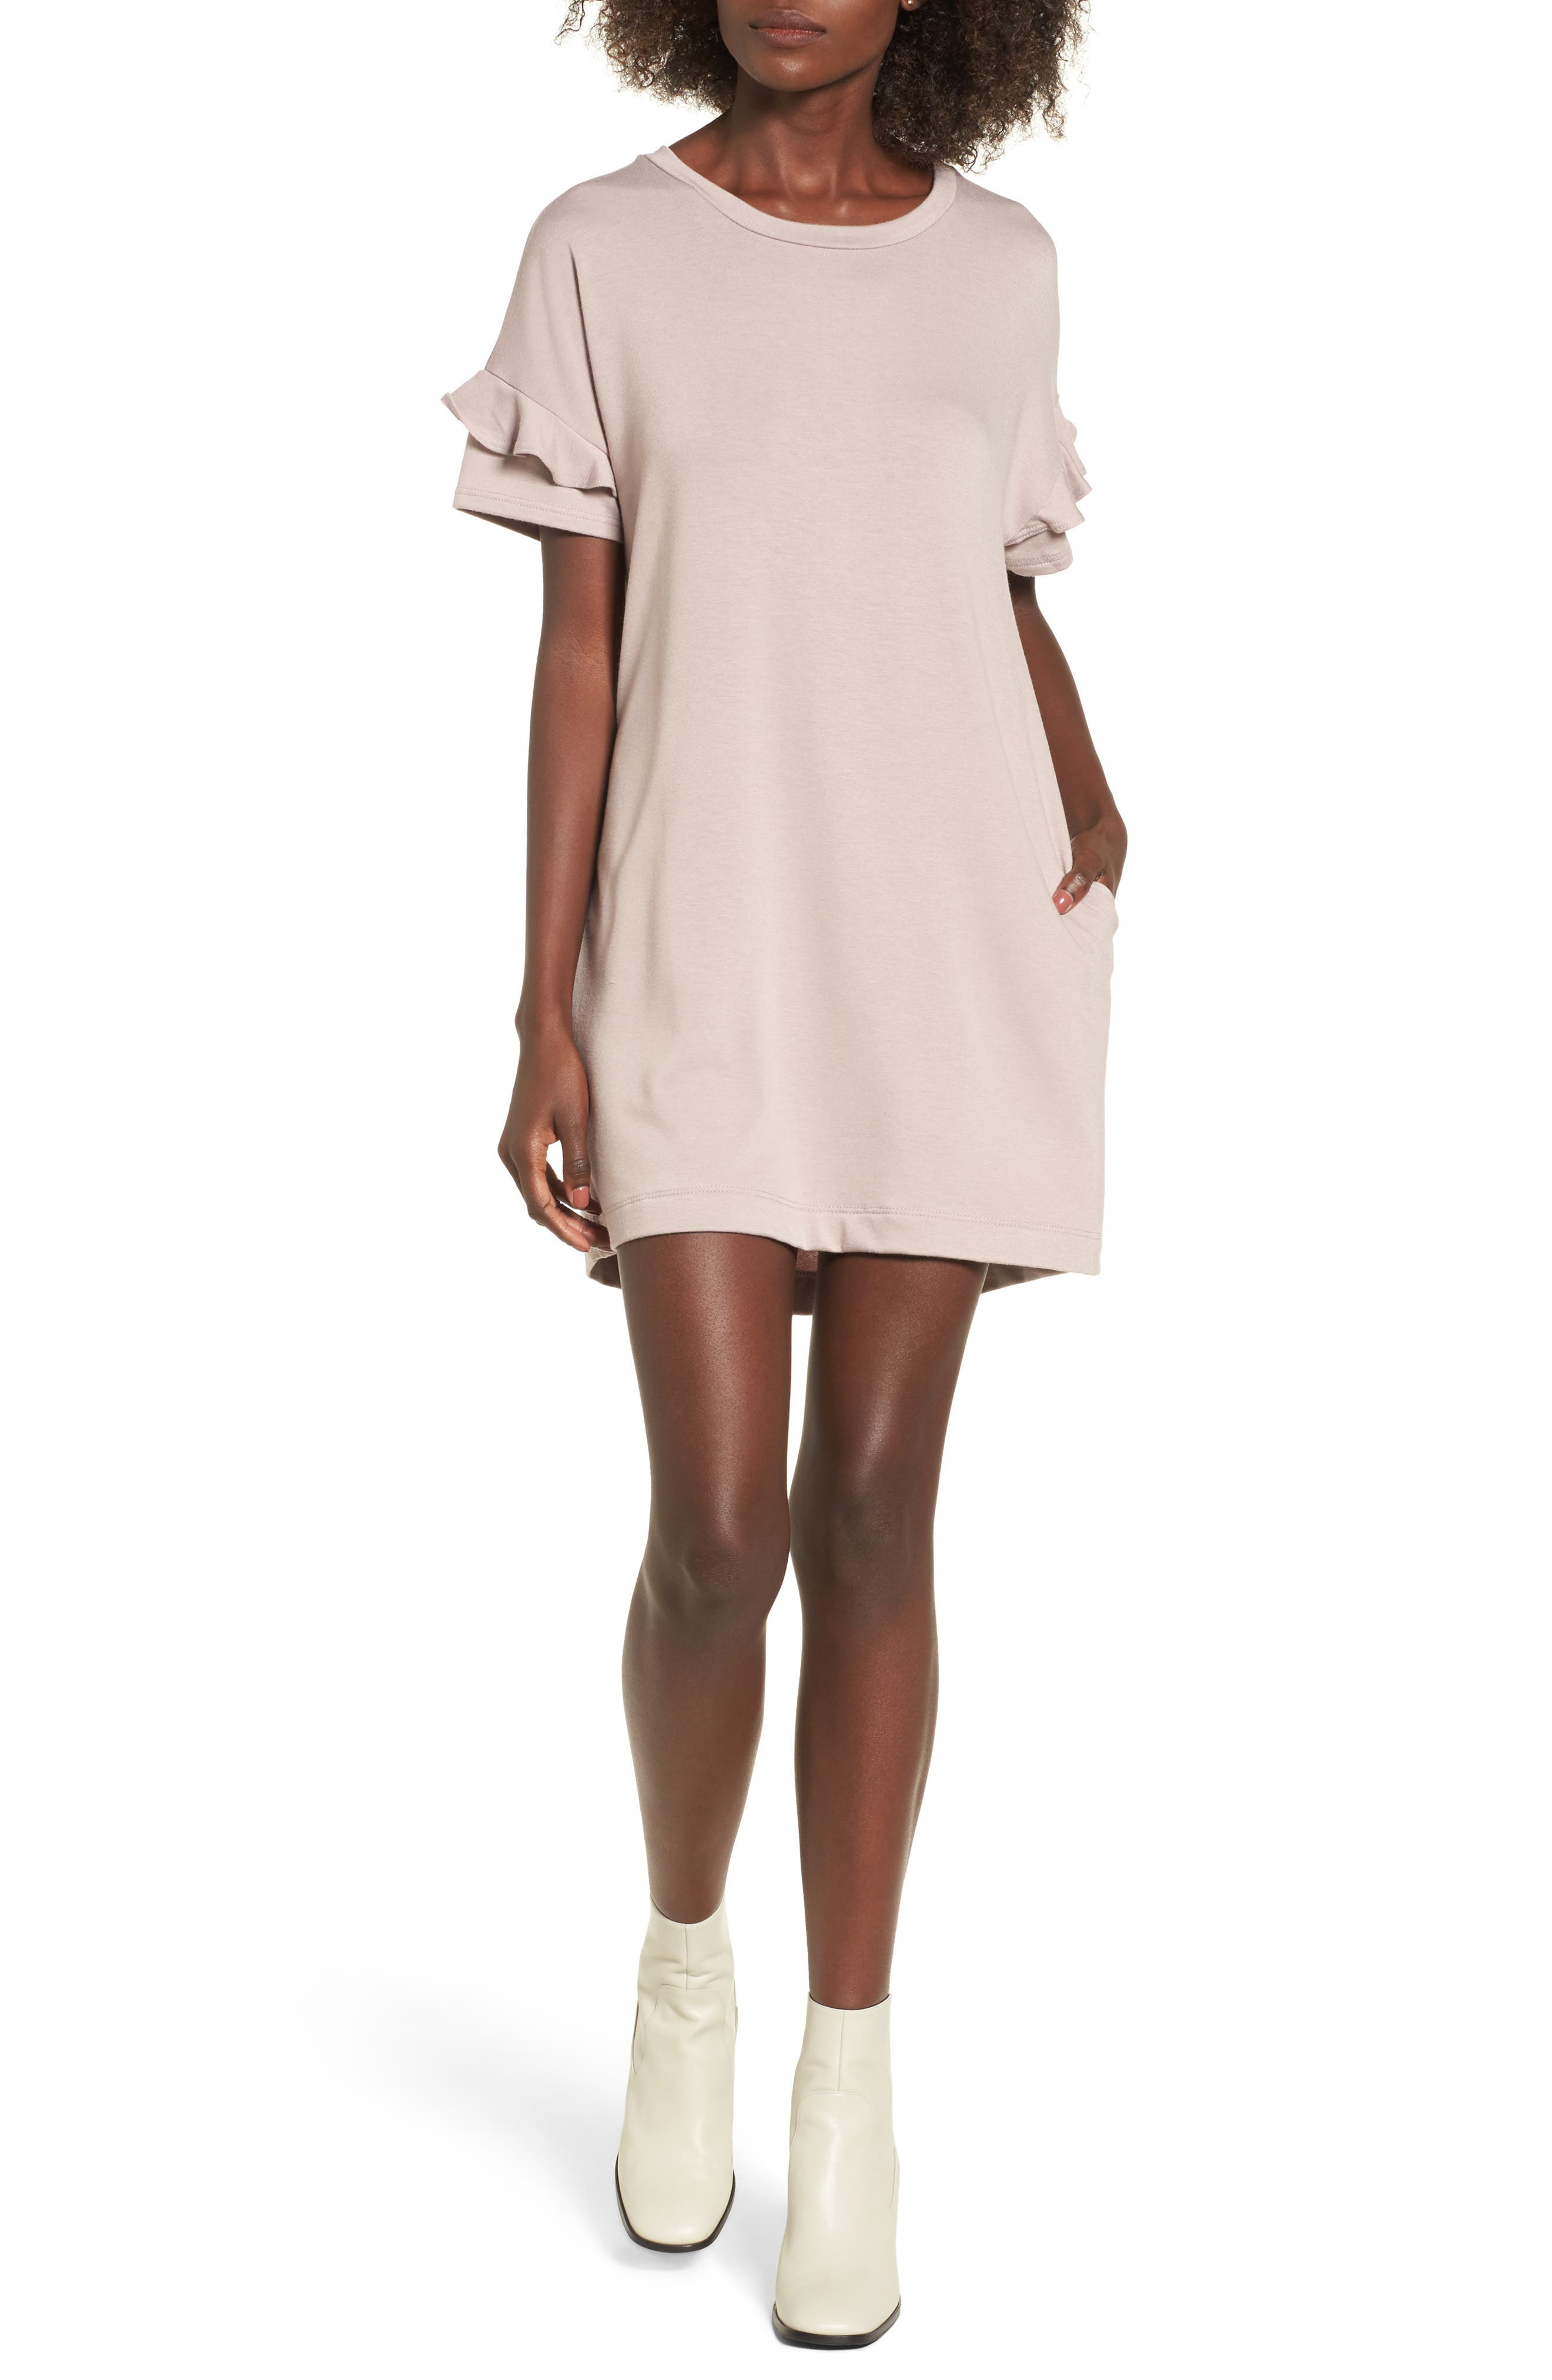 Alternate Image 1 Selected - Ruffle Sleeve T-Shirt Dress